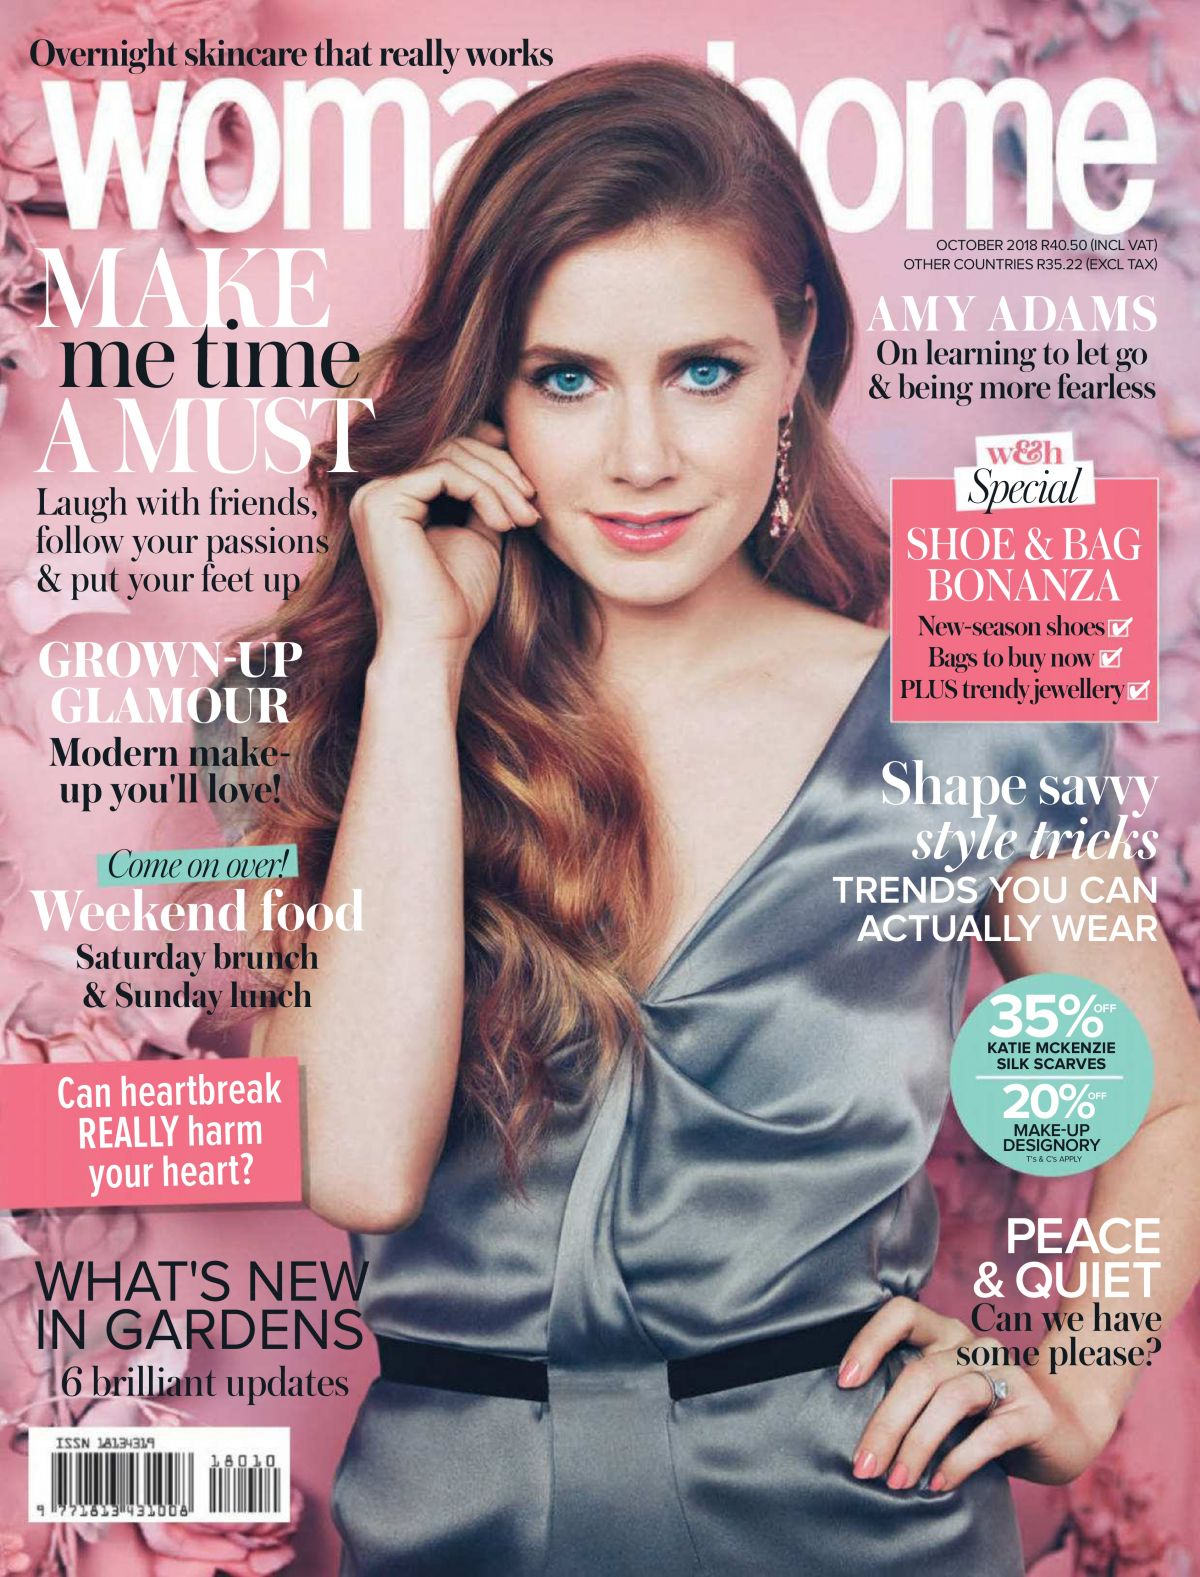 Amy Adams In Woman Home Magazine South Africa October 2018